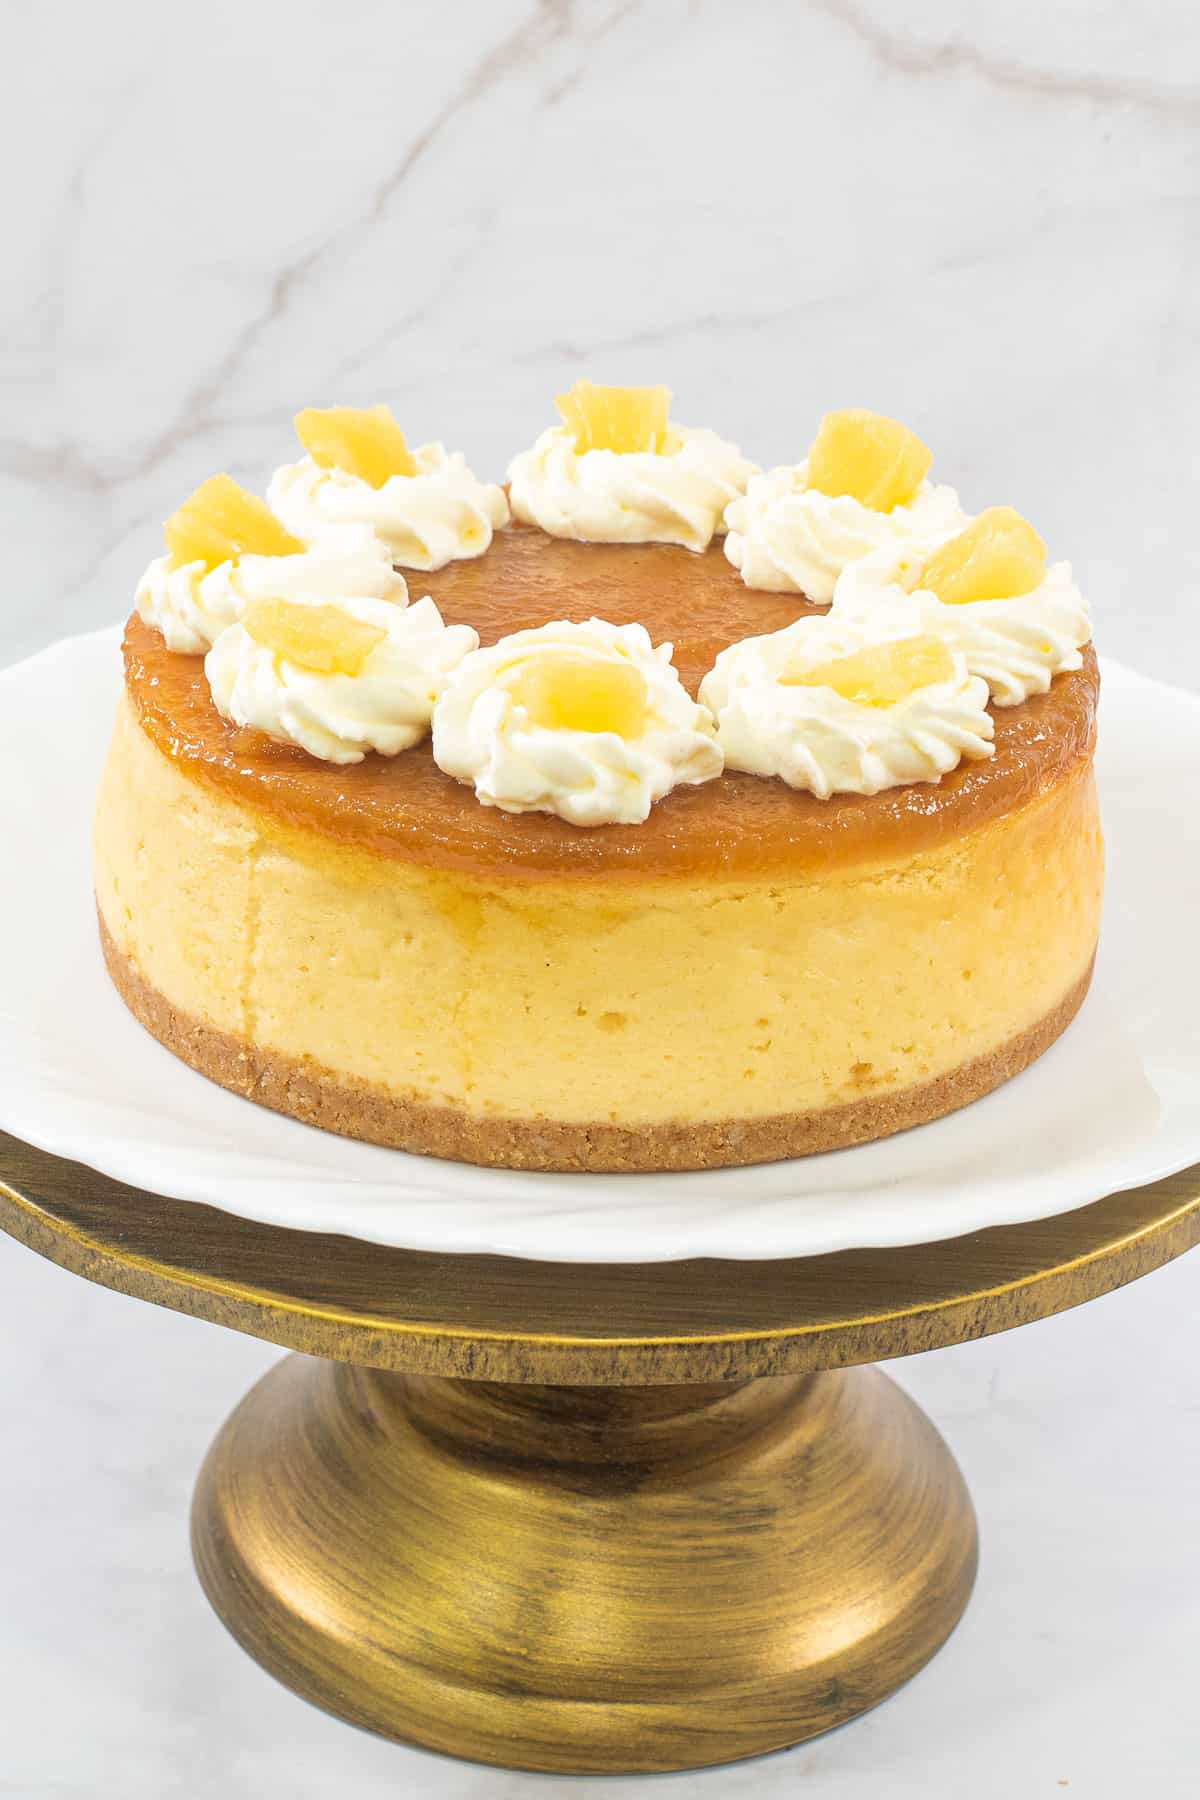 A round cheesecake with pineapple filling topping on a gold cake stand